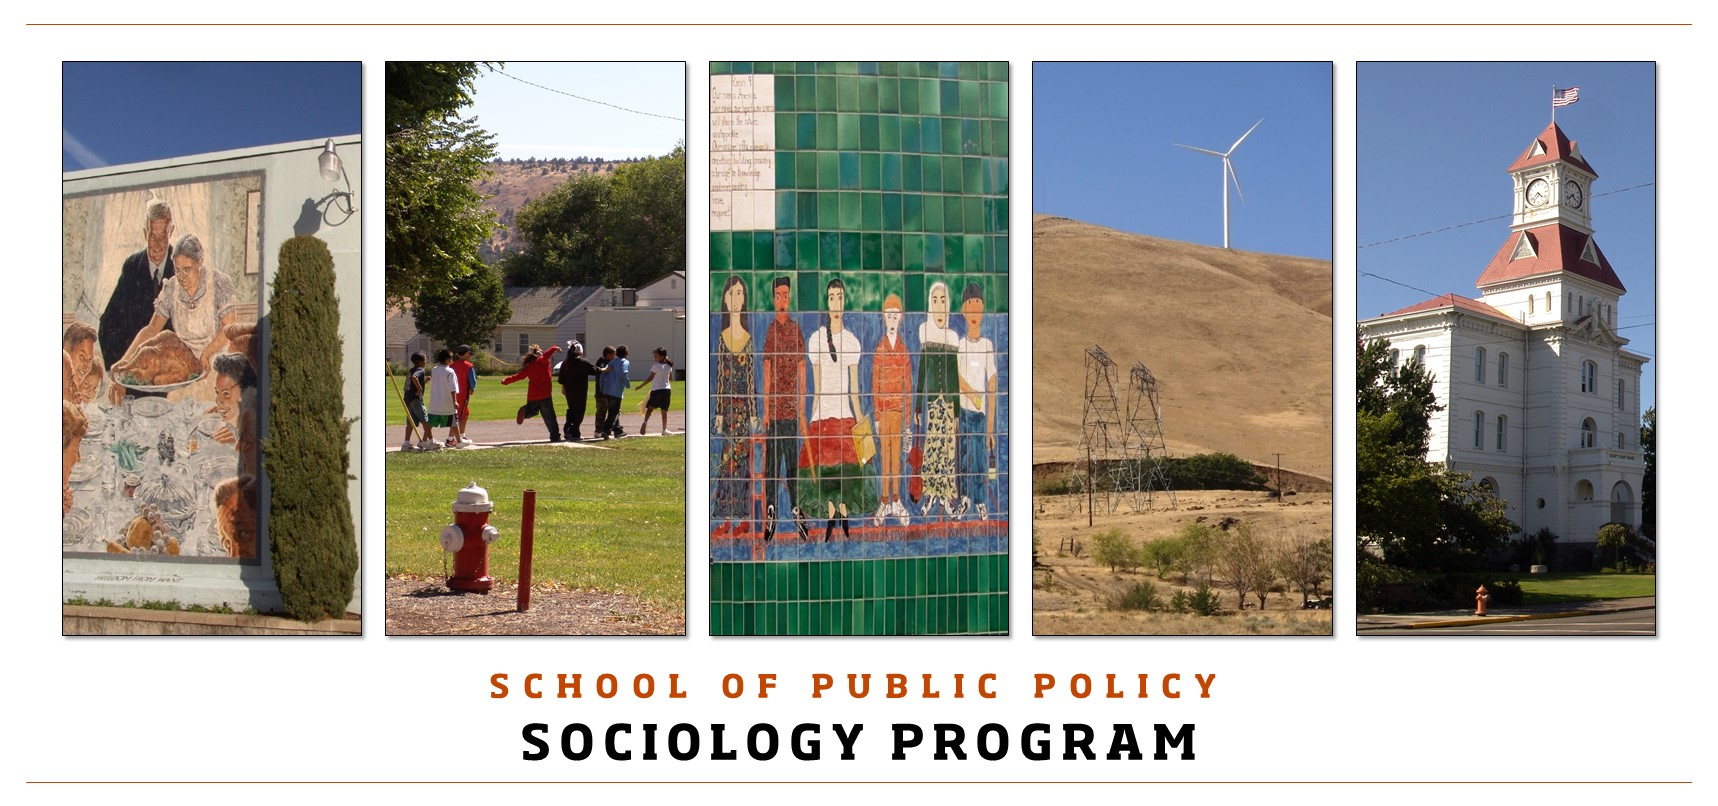 School of Public Policy Sociology Program